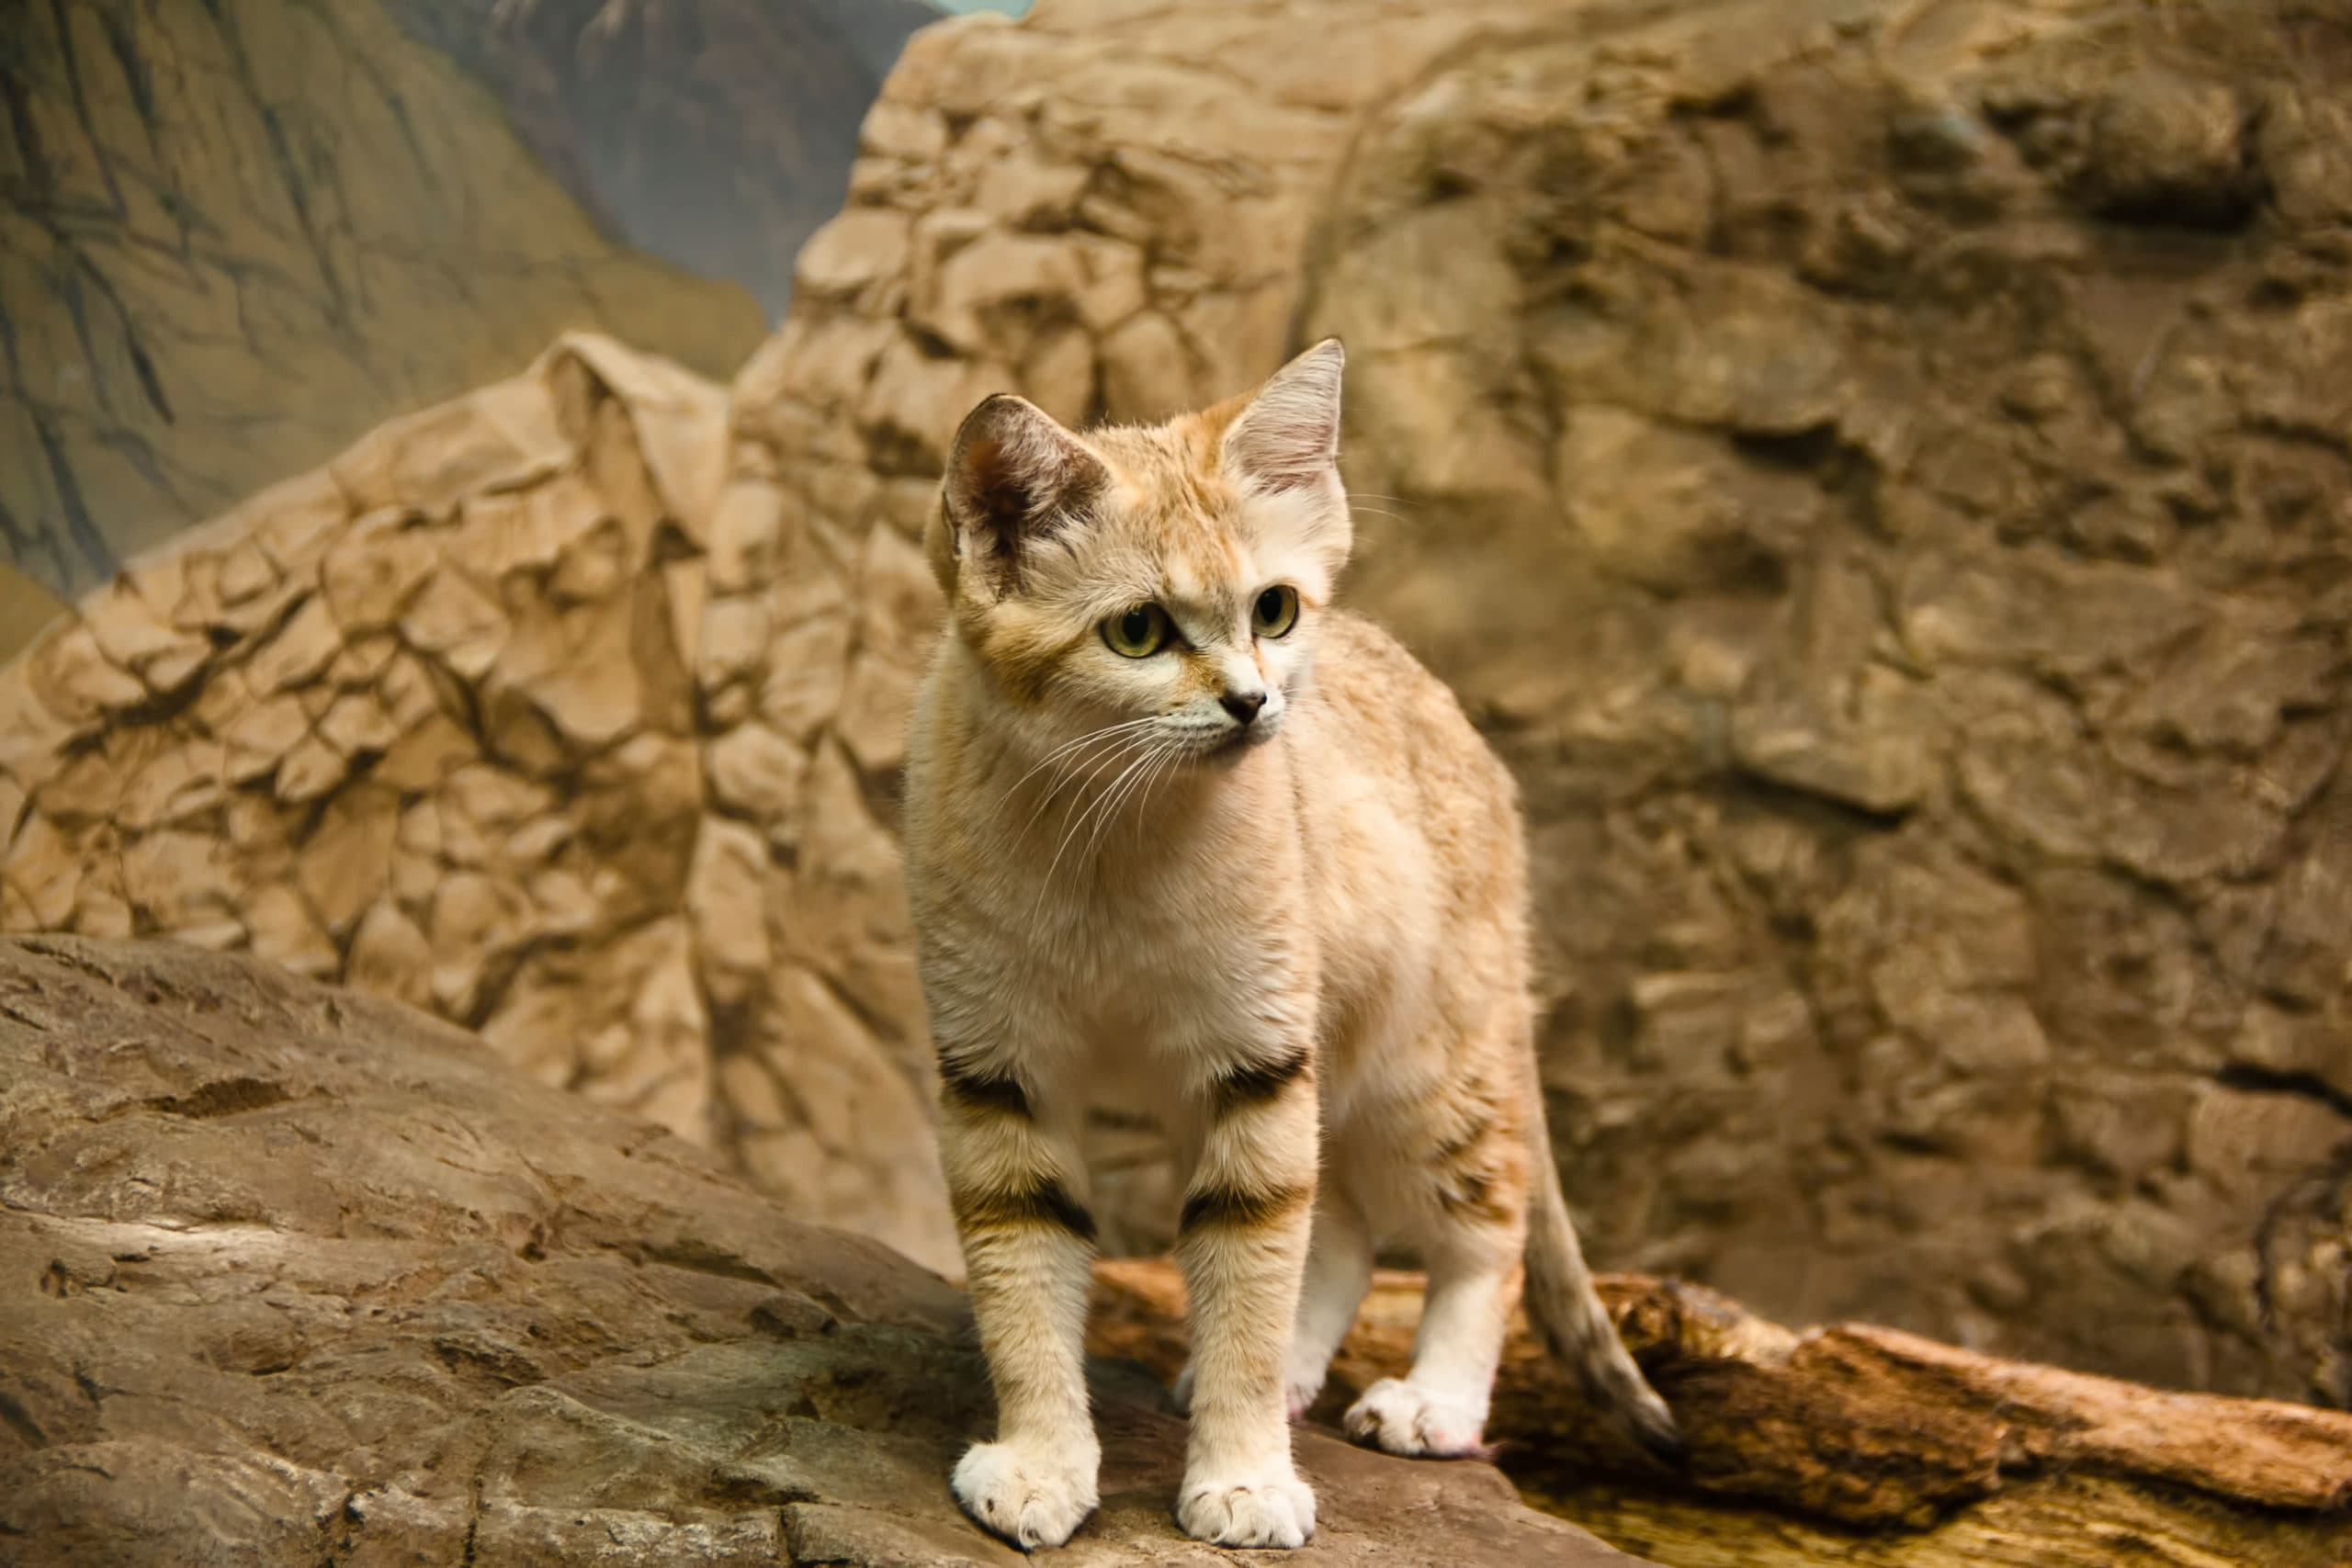 The sand cat lives in arid areas including the deserts of Pakistan. Under the 'nature performance bond', Pakistan could receive finance in return for protecting biodiversity. — Image: Richard Higgins/Alamy